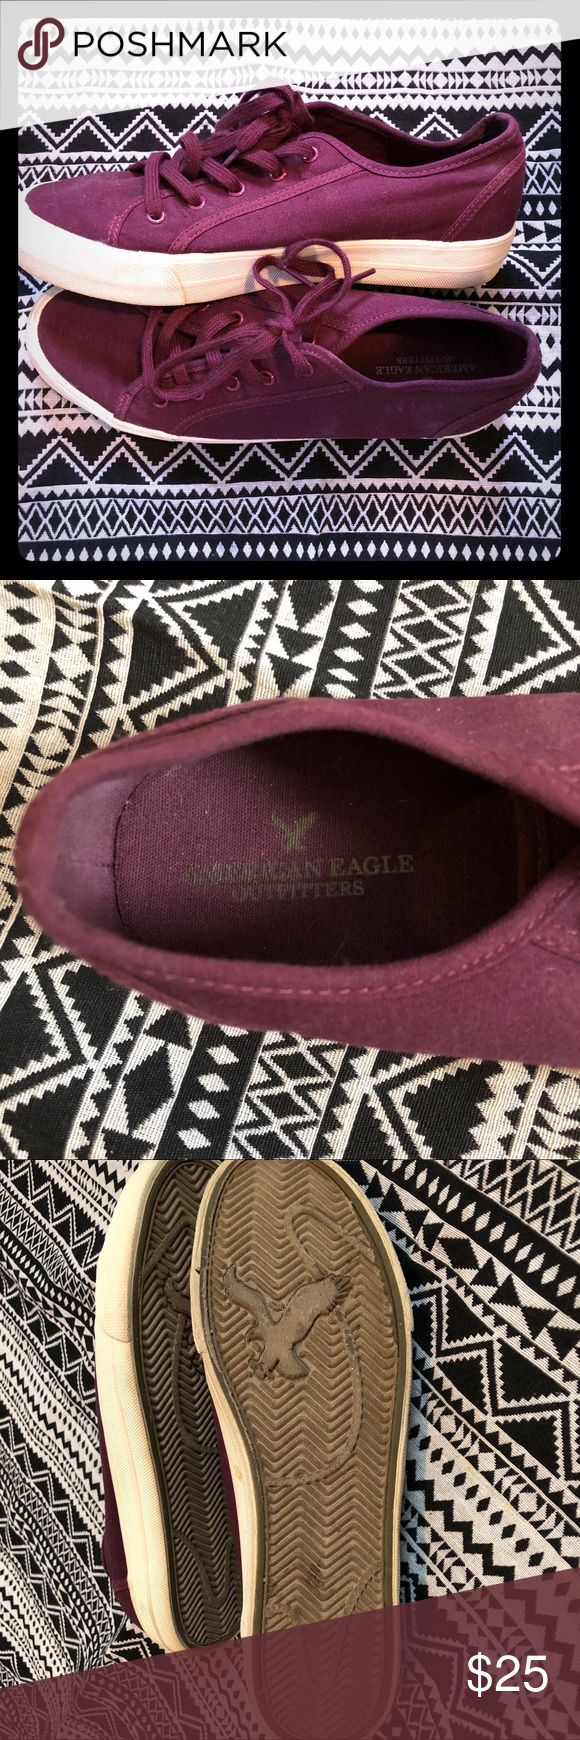 American Eagle platform tennis shoes 9 Gently worn. In good condition, no flaws or damages. True color is burgundy. American Eagle Outfitters Shoes Sneakers